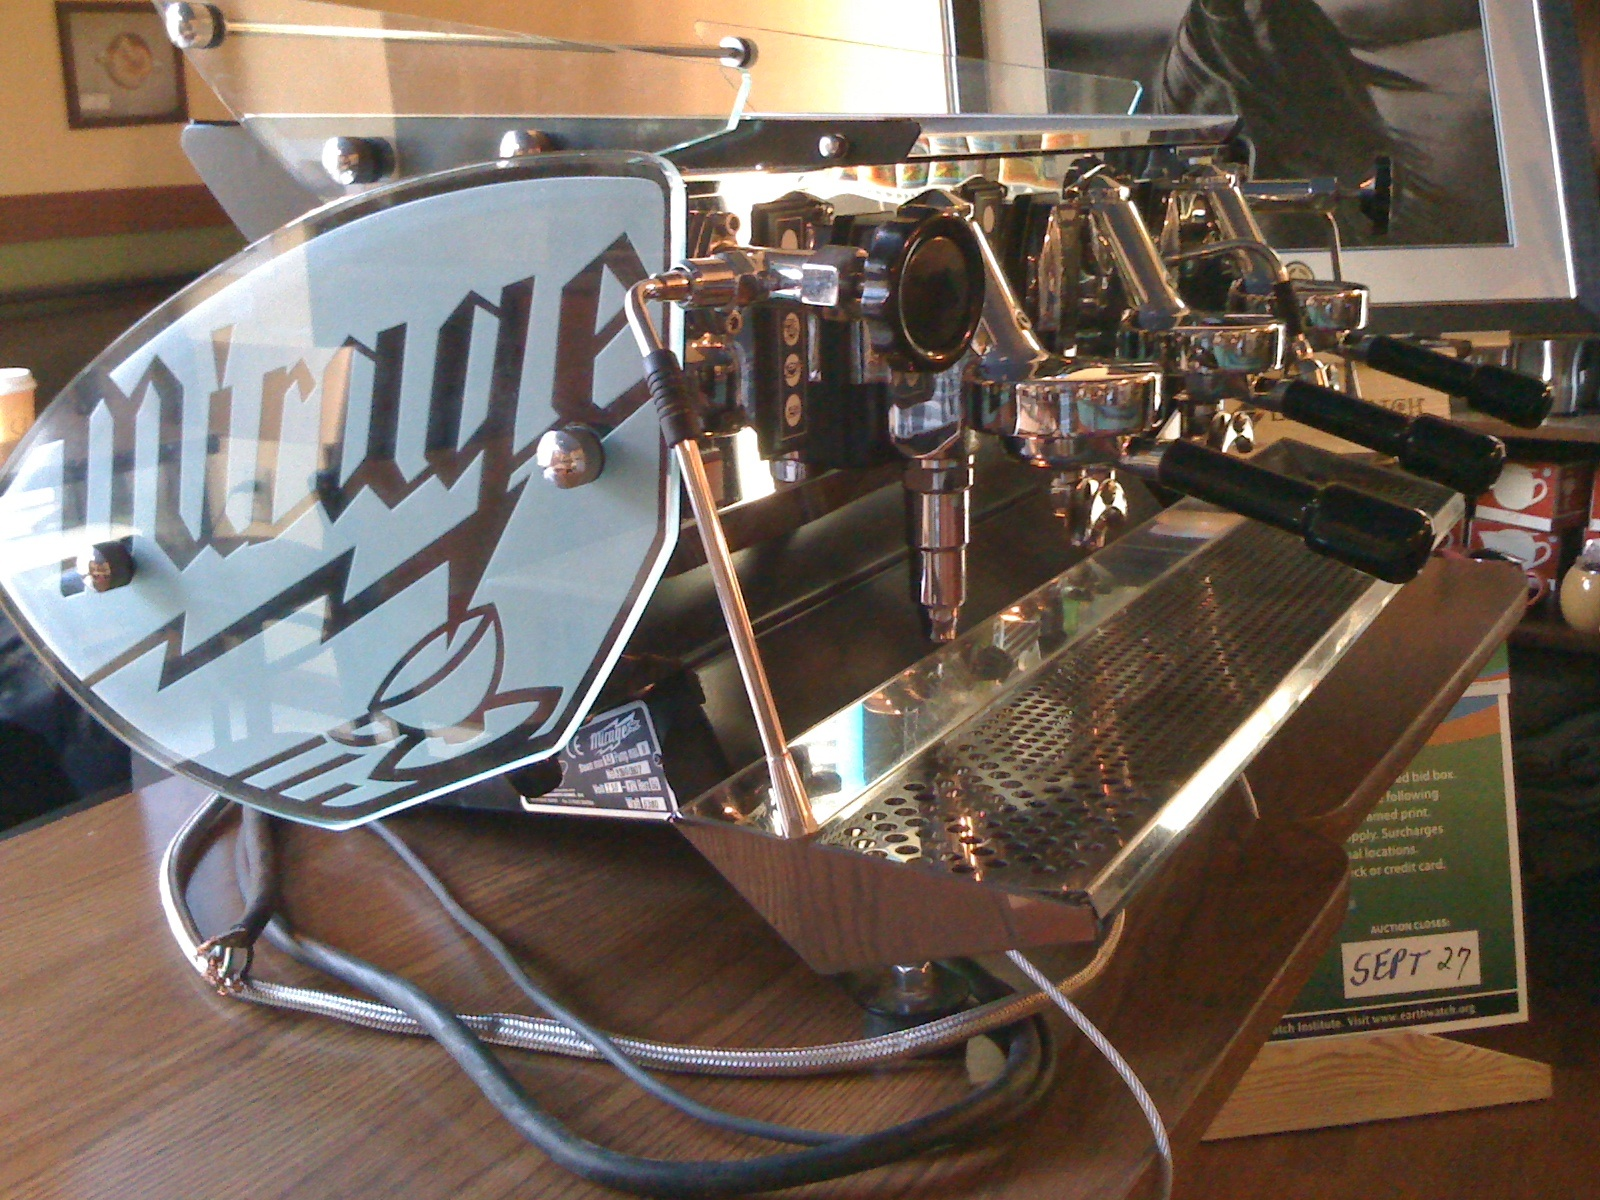 A beautiful espresso machine